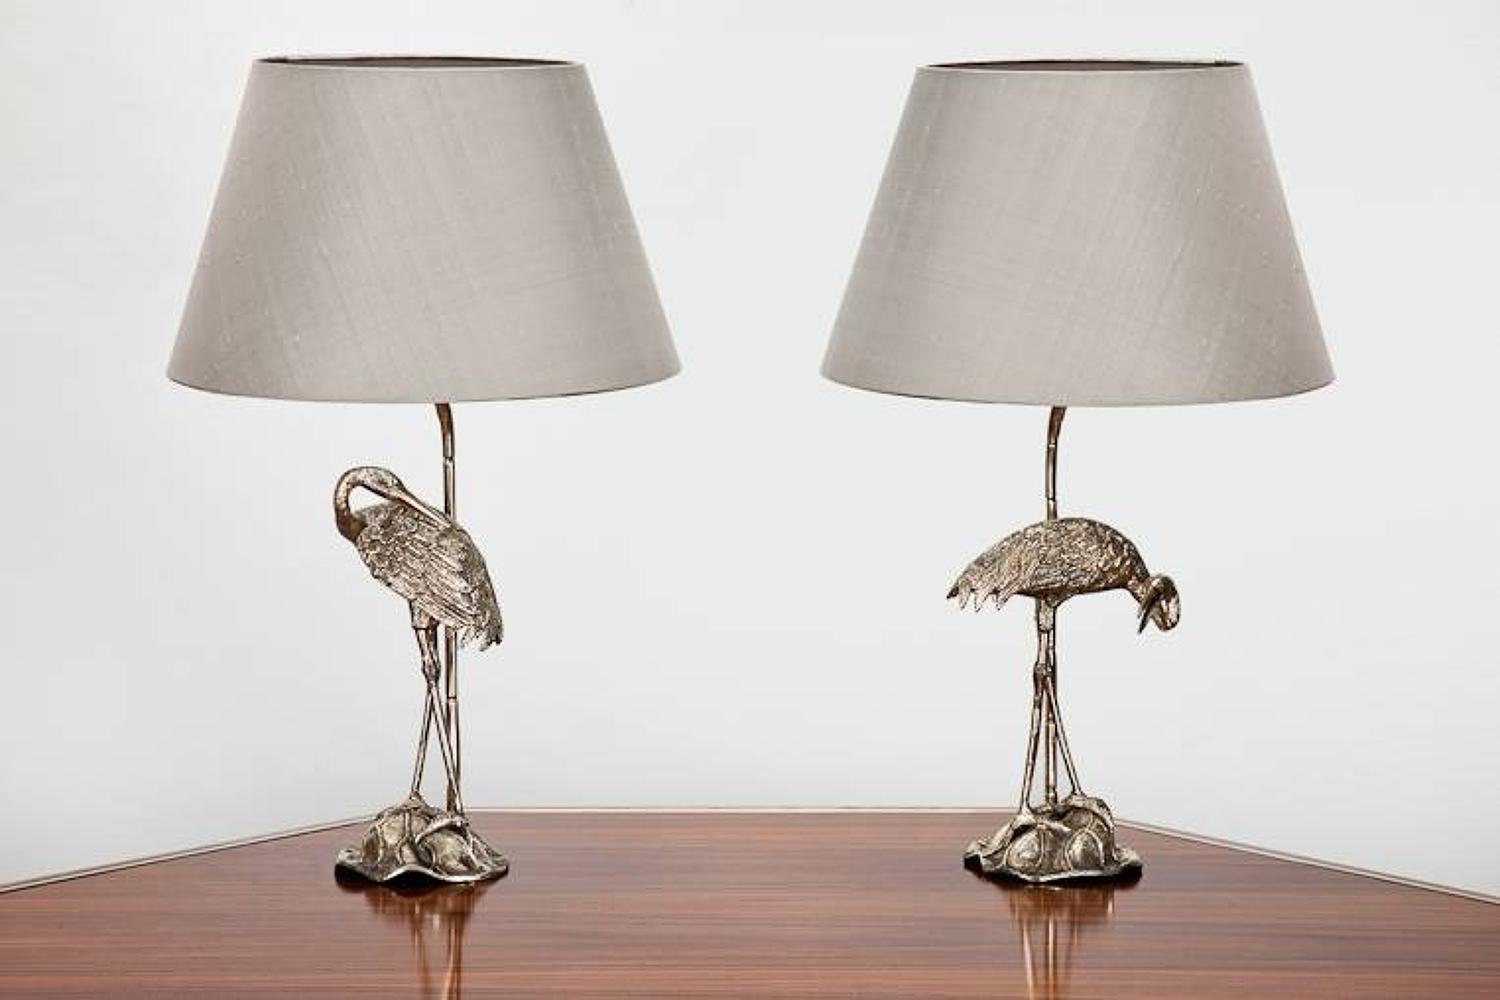 Stork Table lamps